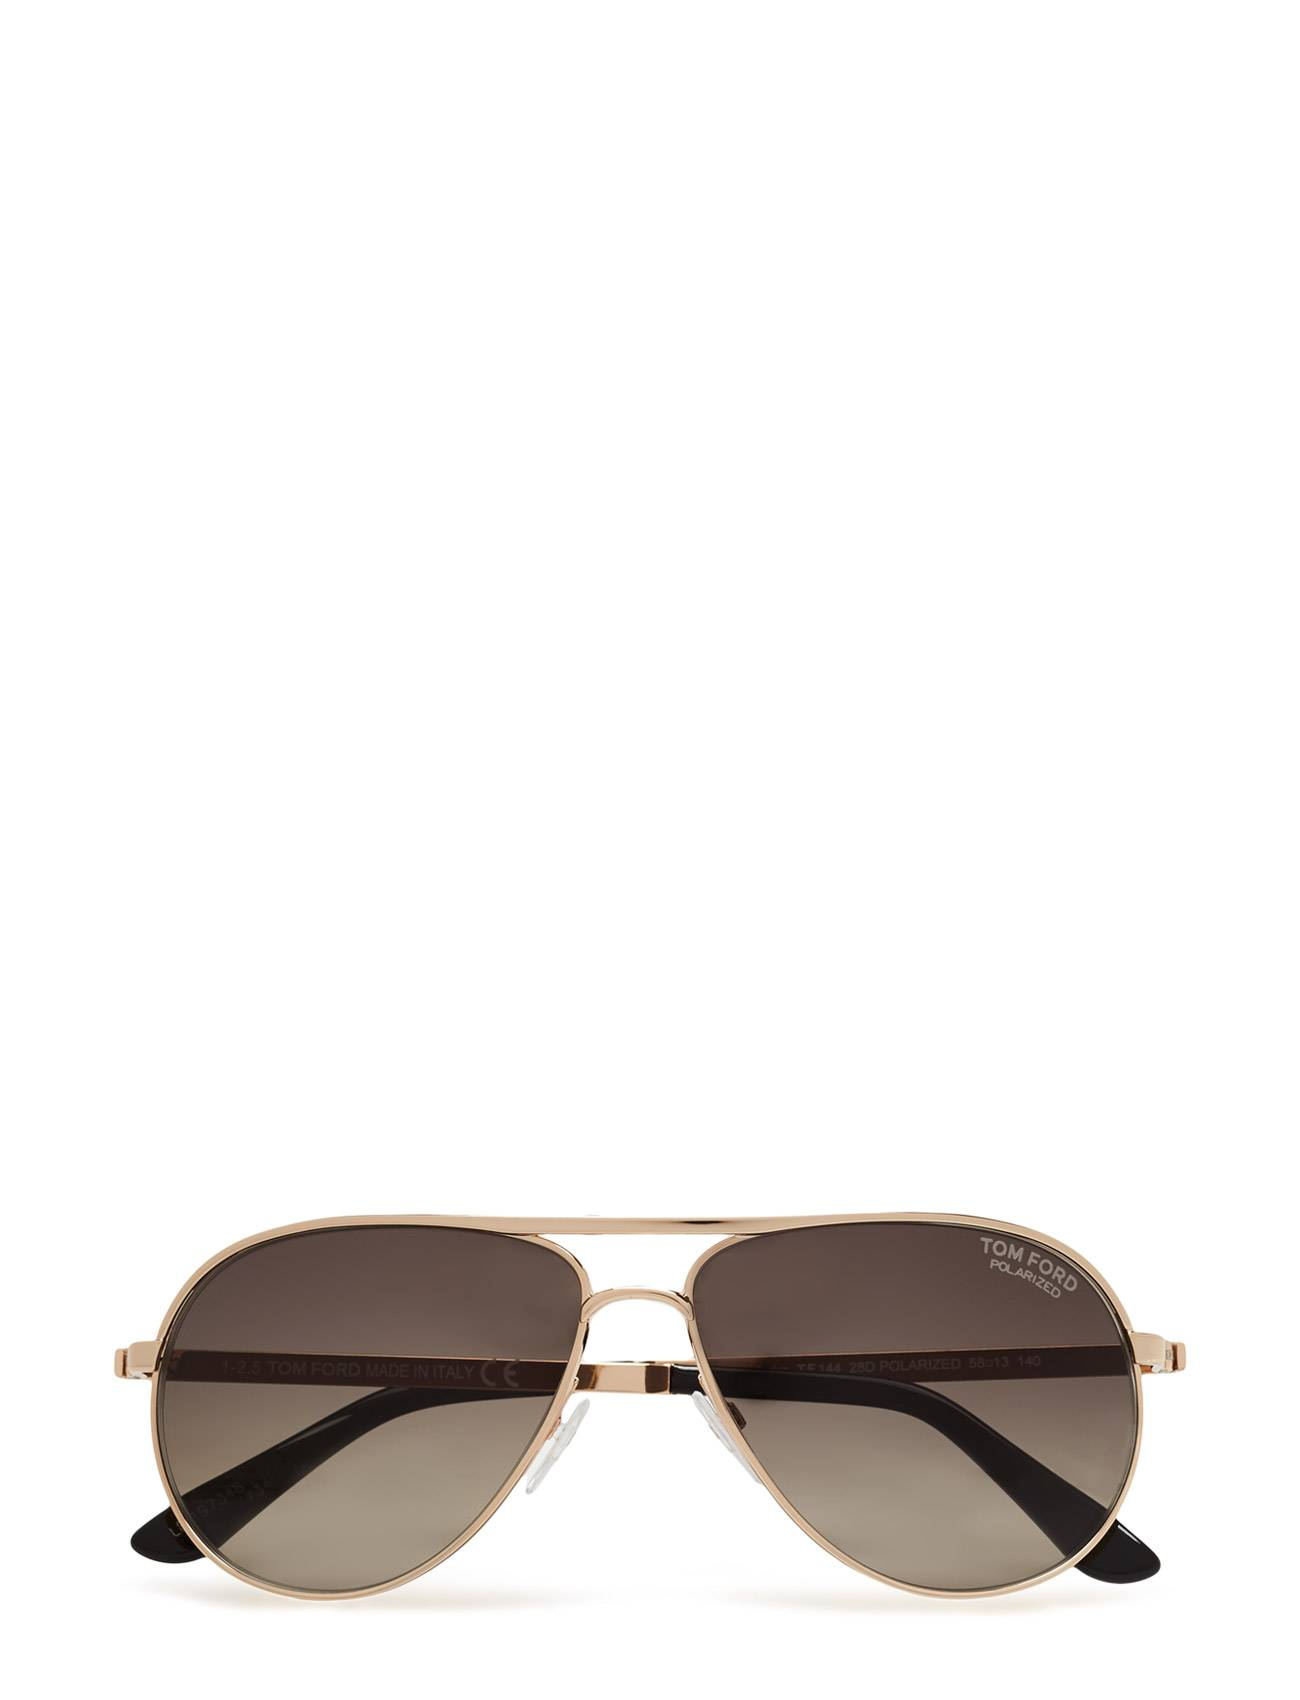 Tom Ford Sunglasses Tom Ford Marko